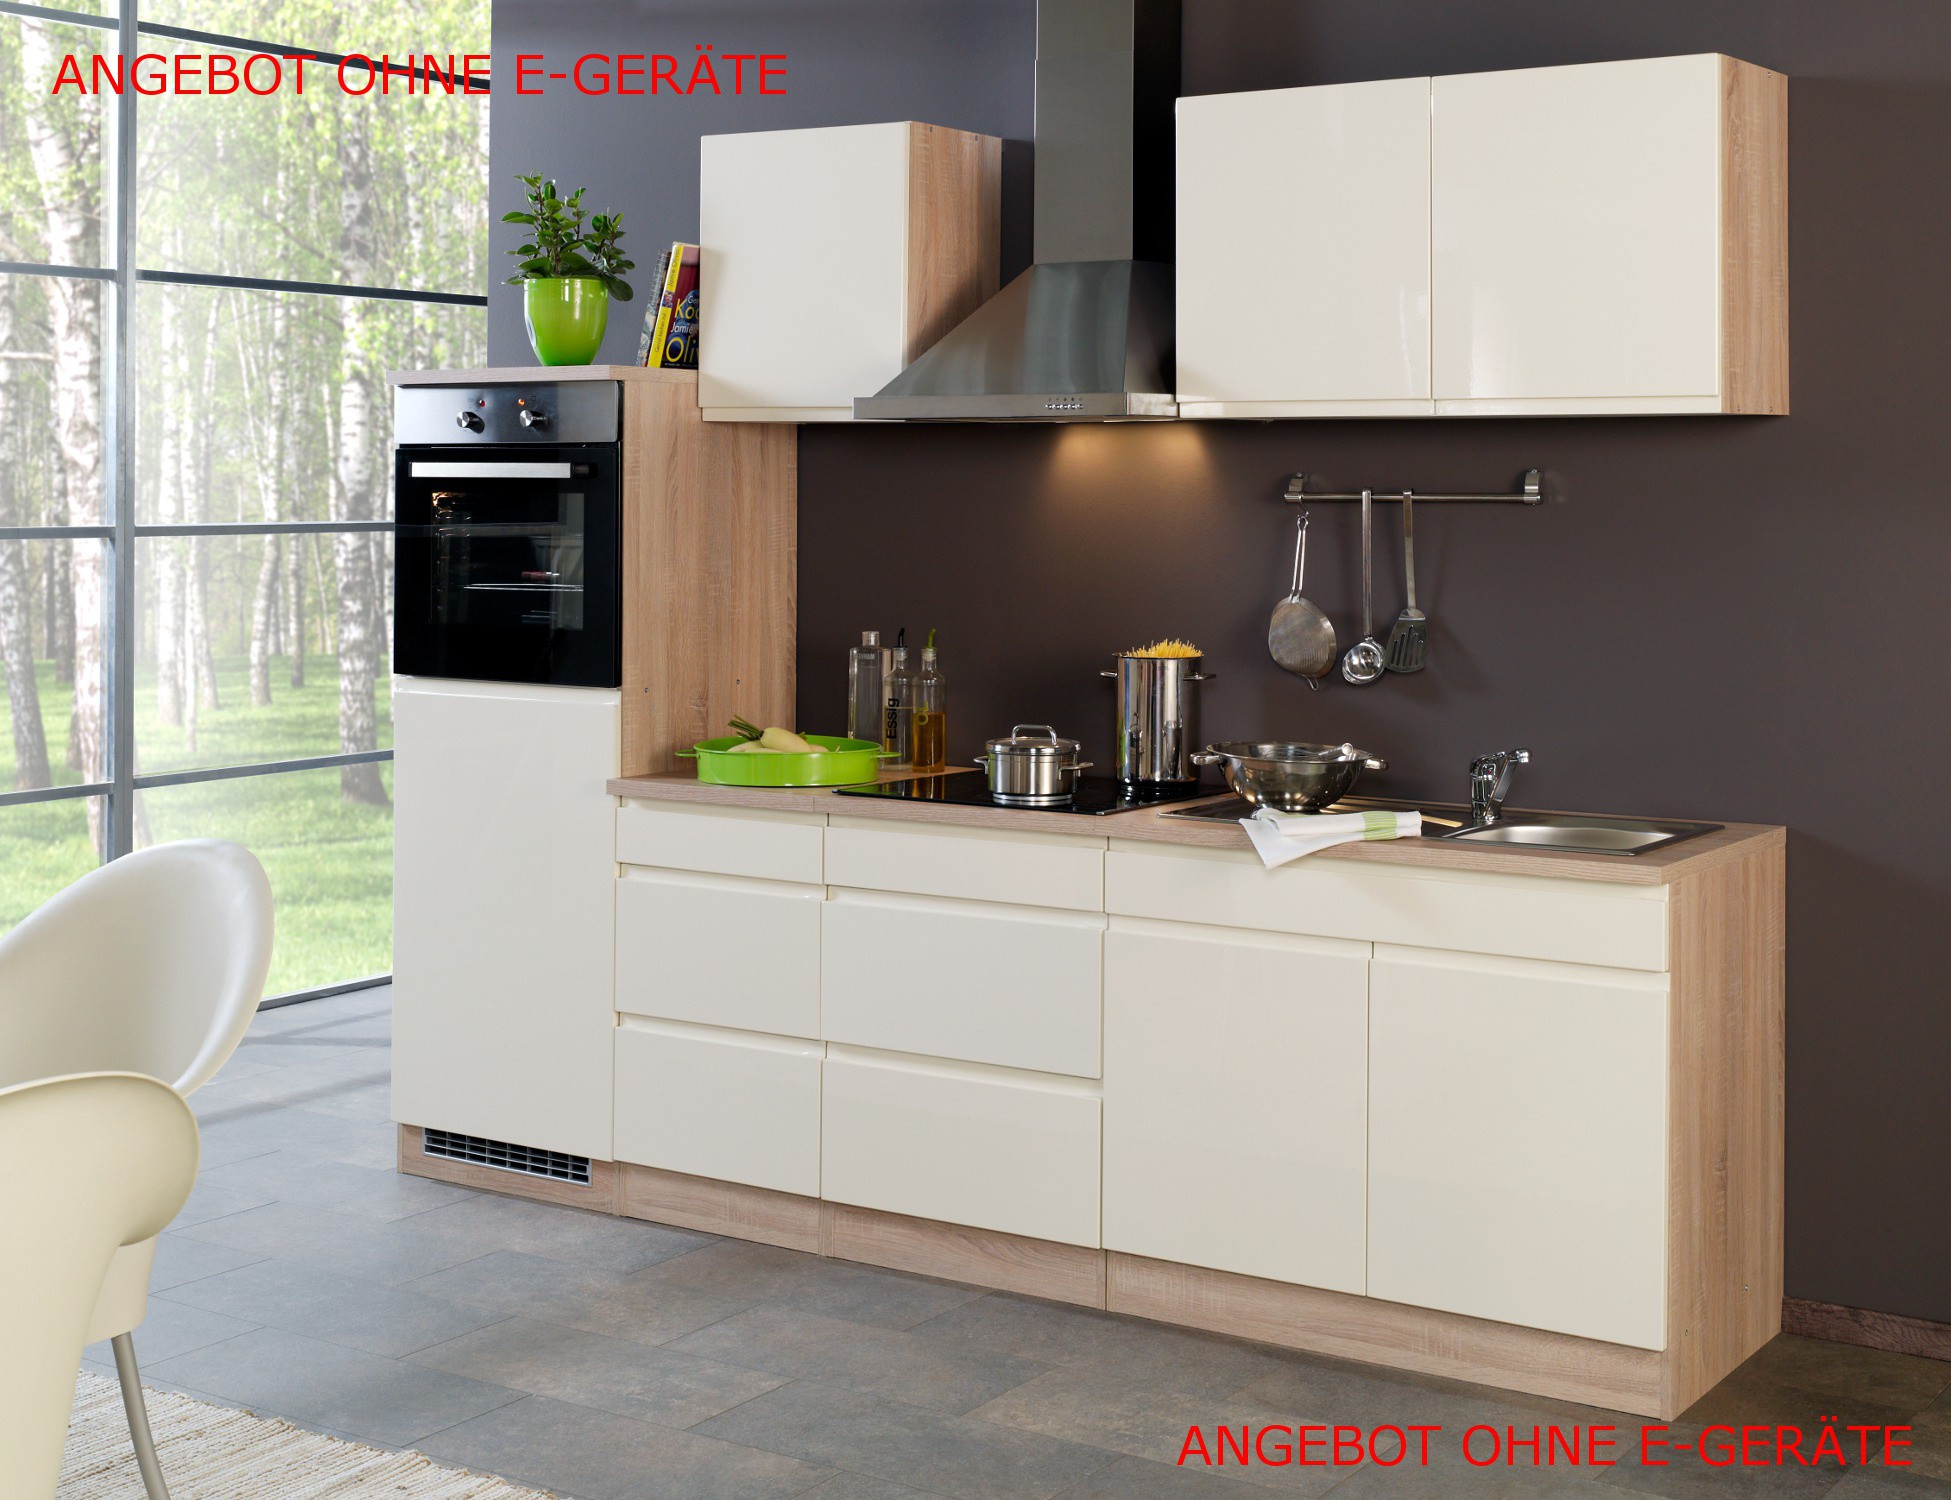 k chenzeile cardiff k chen leerblock breite 270 cm hochglanz creme k che cardiff. Black Bedroom Furniture Sets. Home Design Ideas